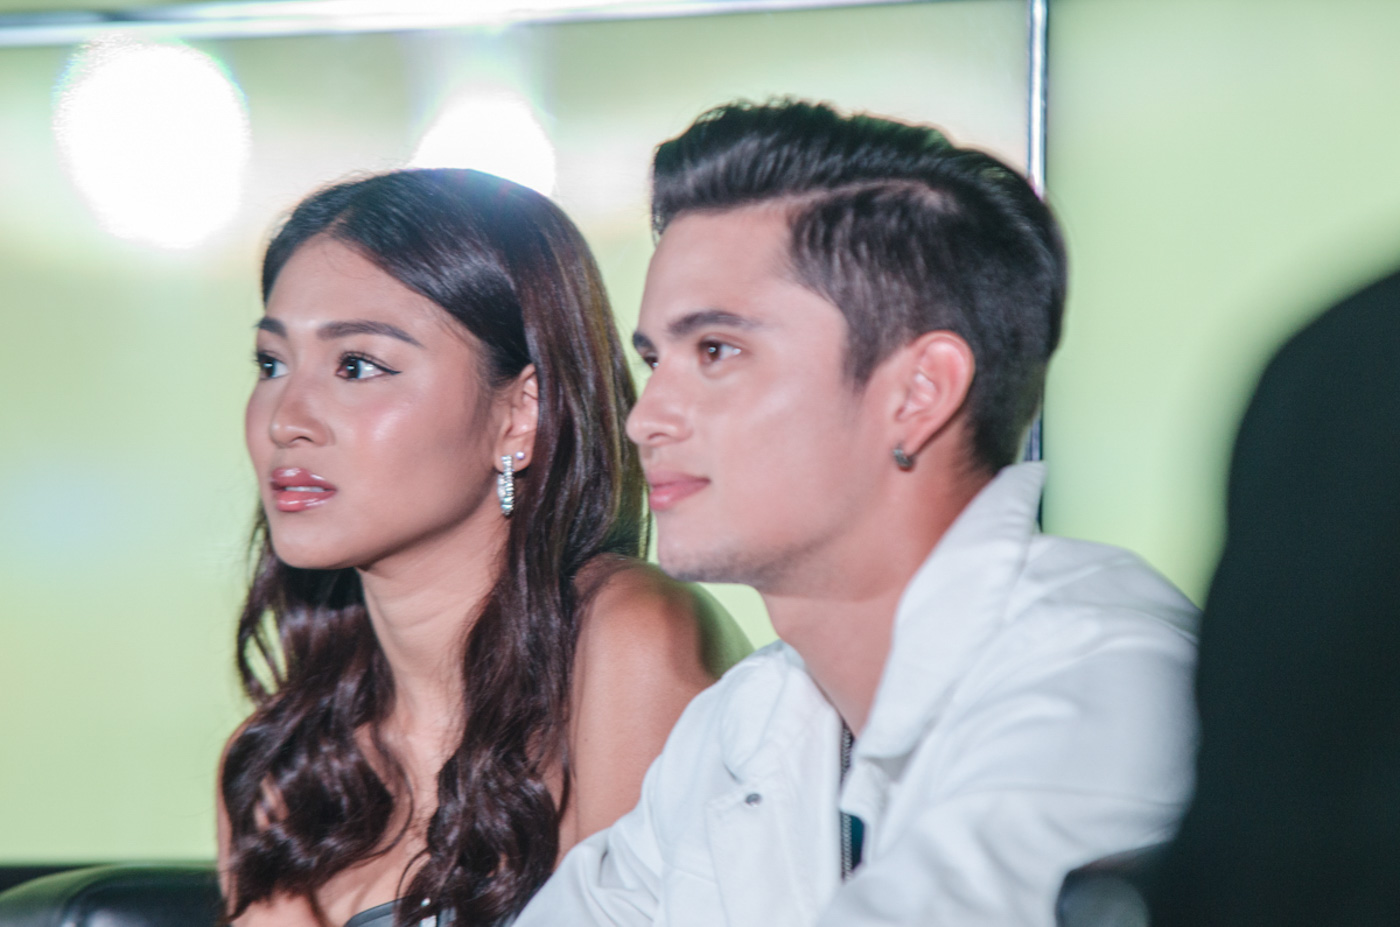 Show more posts from nadine. James Reid, Nadine Lustre open up about each other post